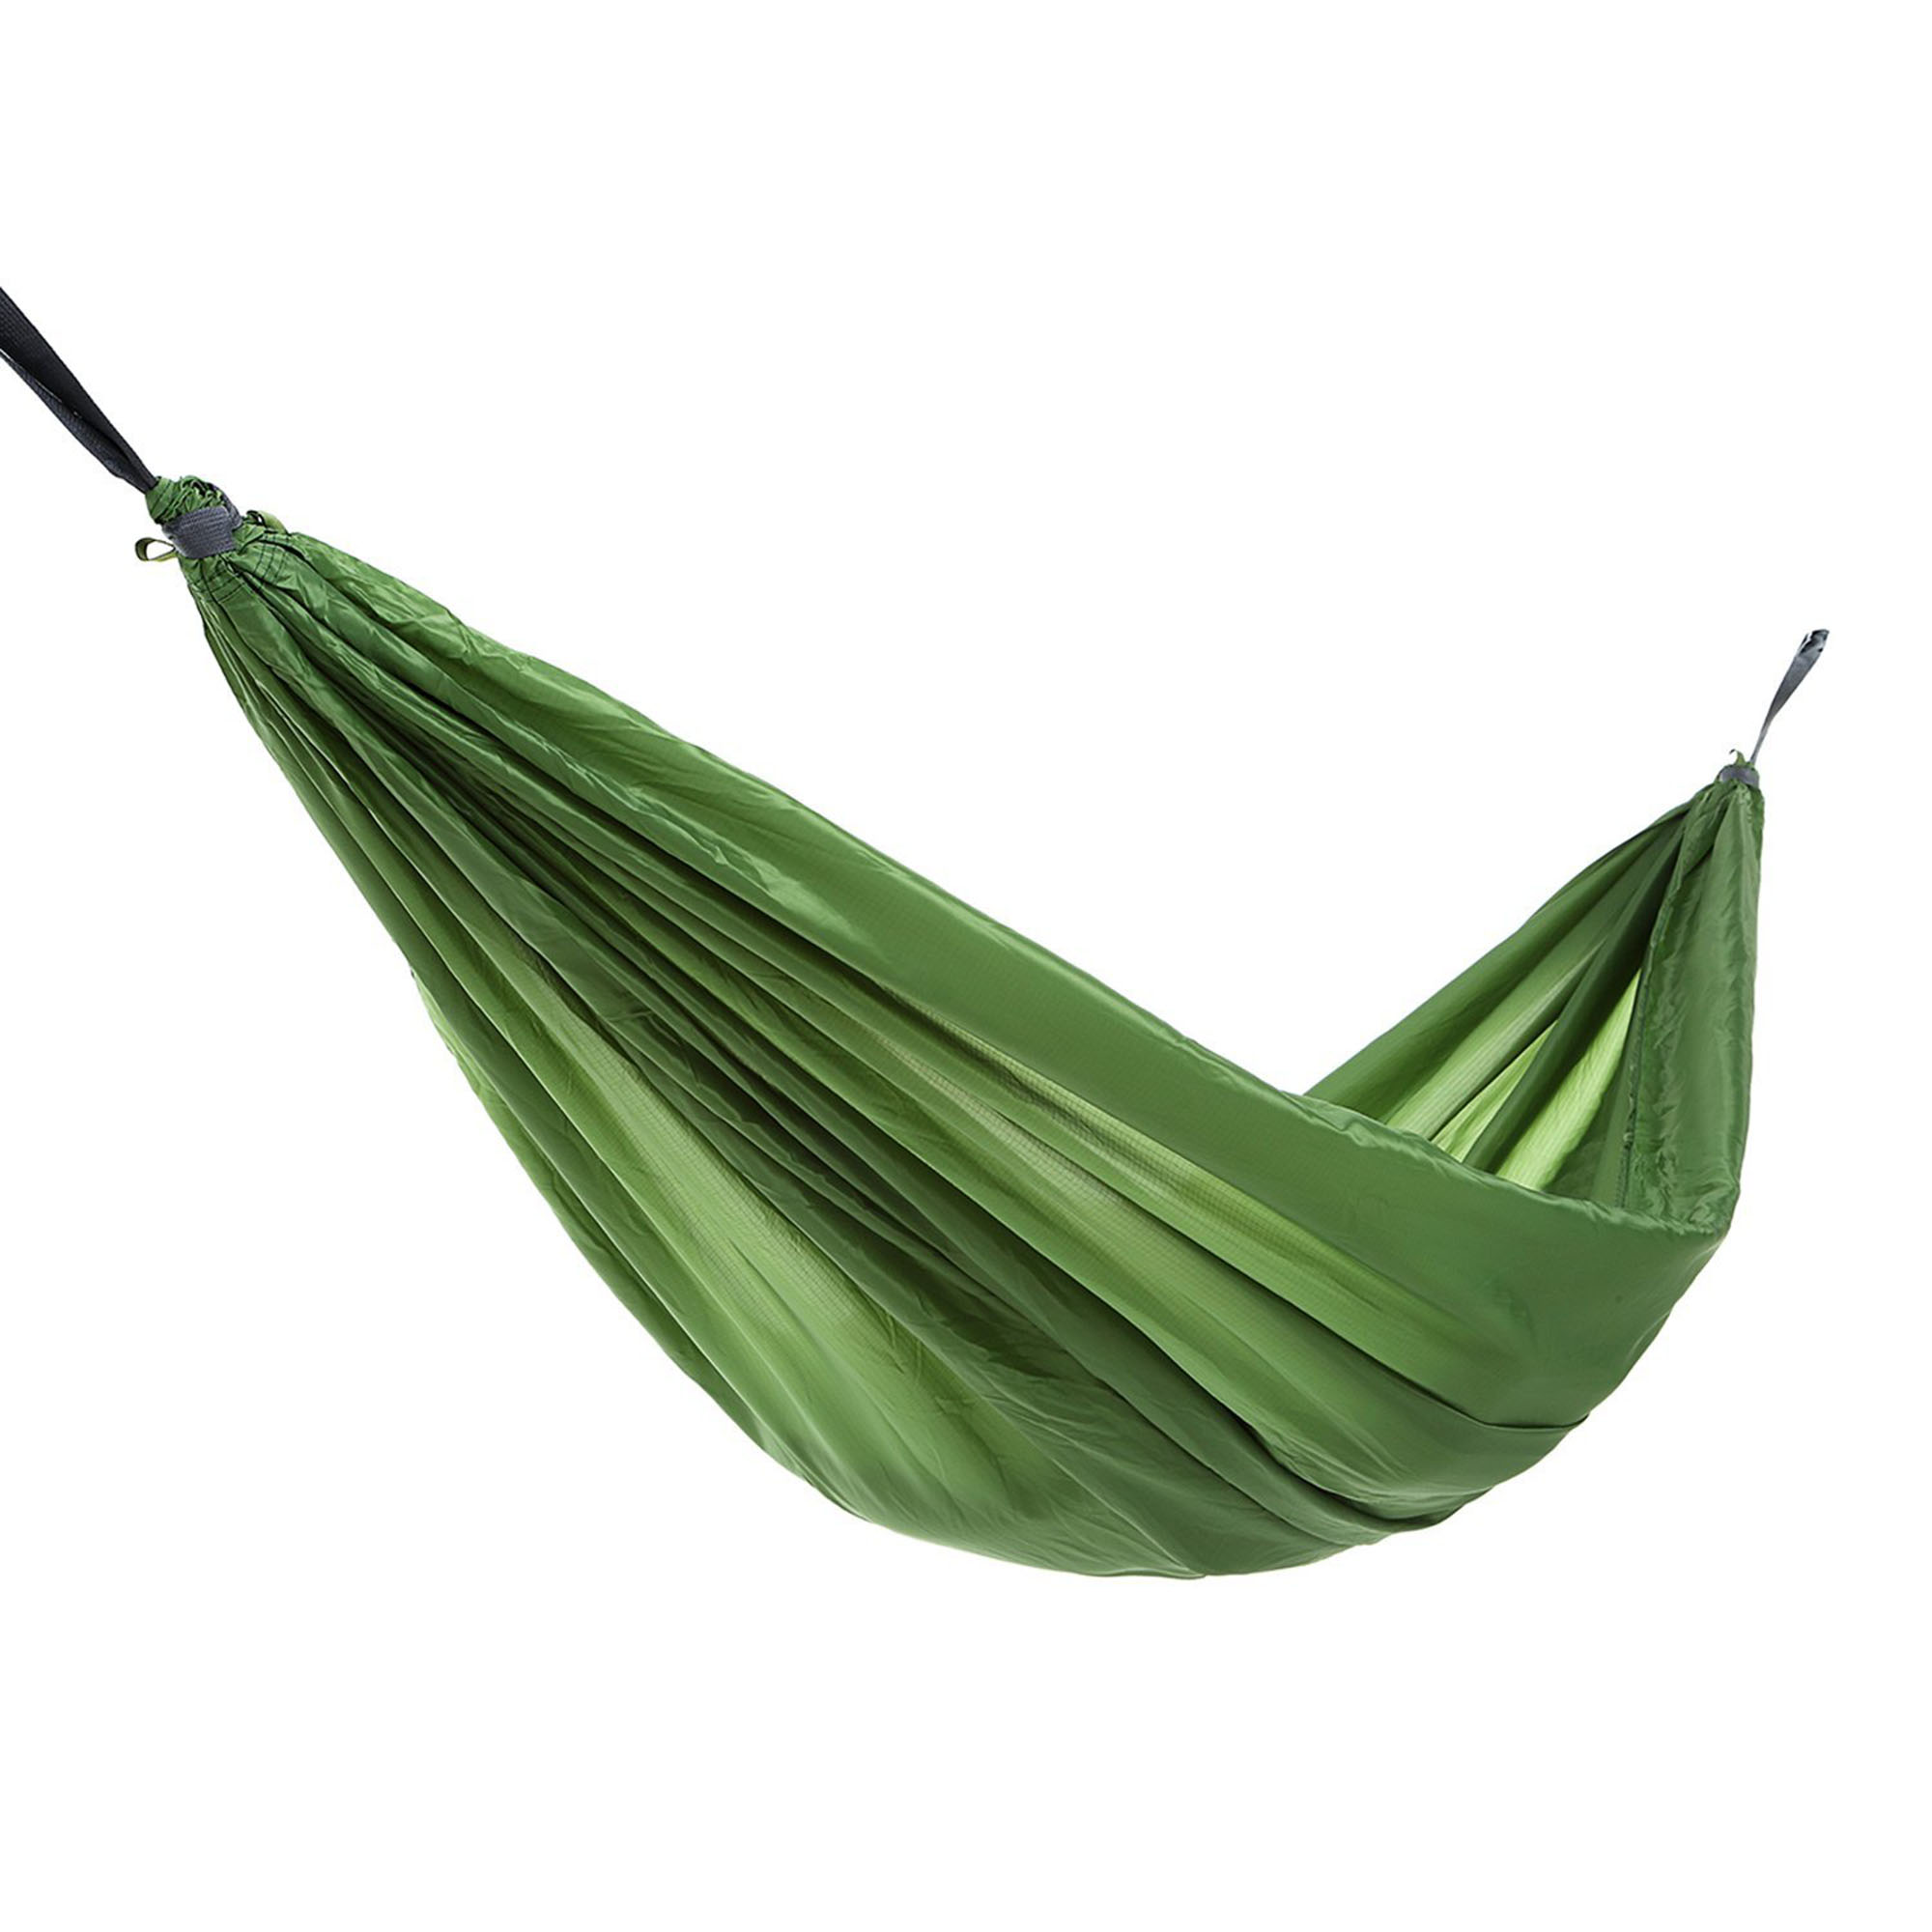 WEANAS Extra Size Parachute Nylon Lightweight Portable Double Deluxe Outfitters Hammock, Ideal For Camping, Hiking,... by Weanas